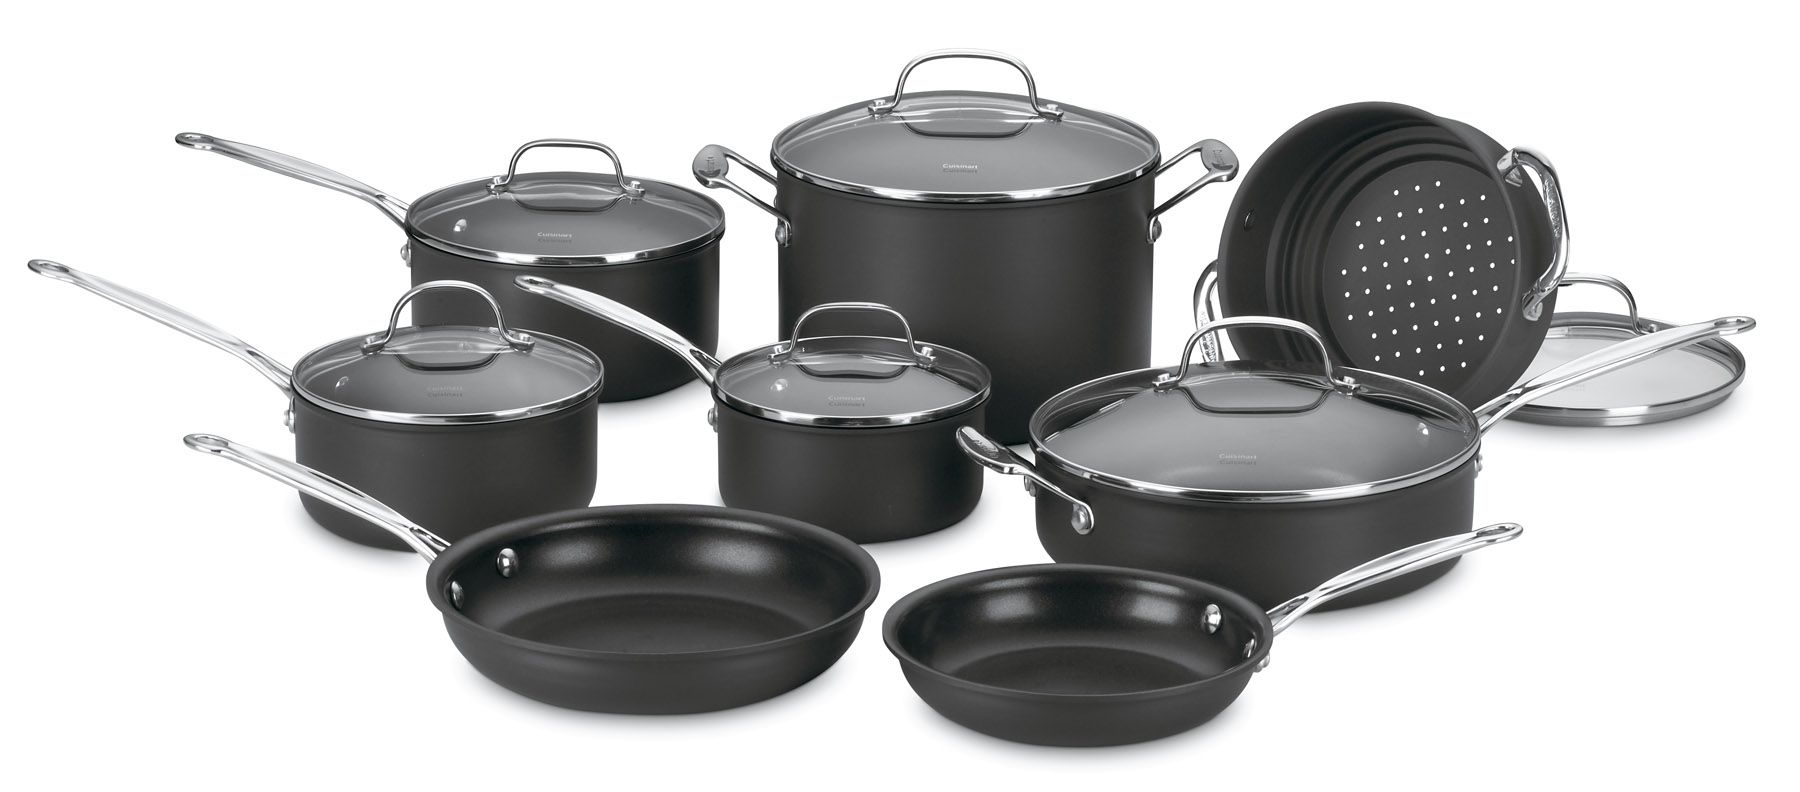 Cuisinart 14-Piece Chef's Classic Non-Stick Cookware Set